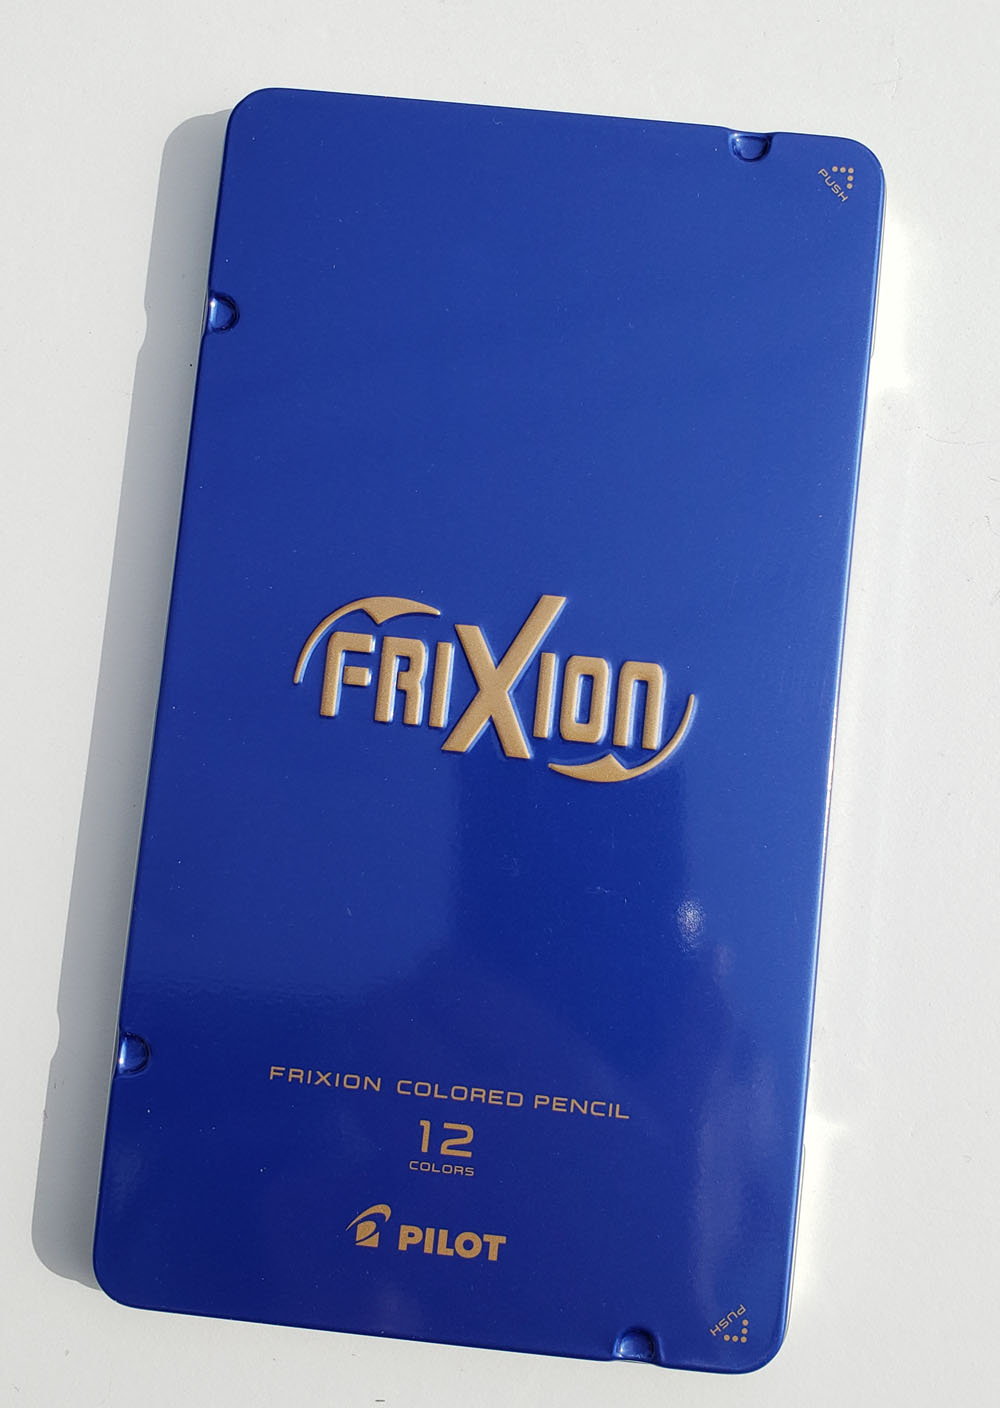 Frixion Colored Pencils for adults